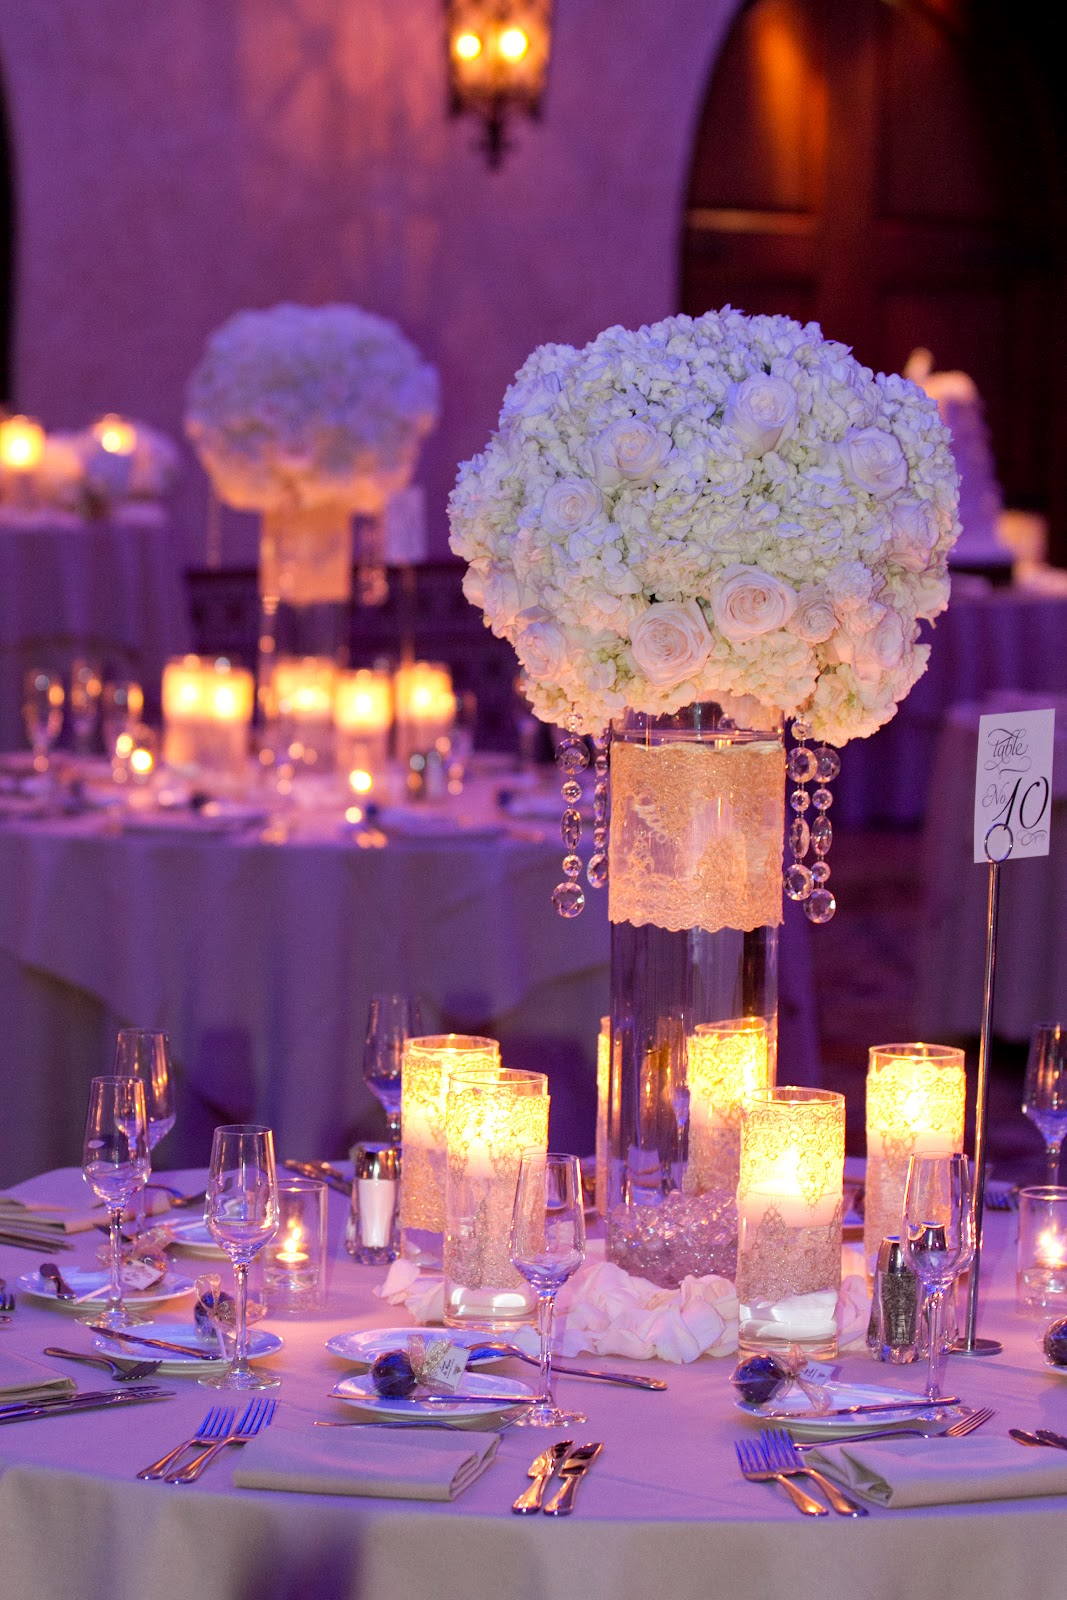 Purple and White Wedding Centerpiece 1067 x 1600